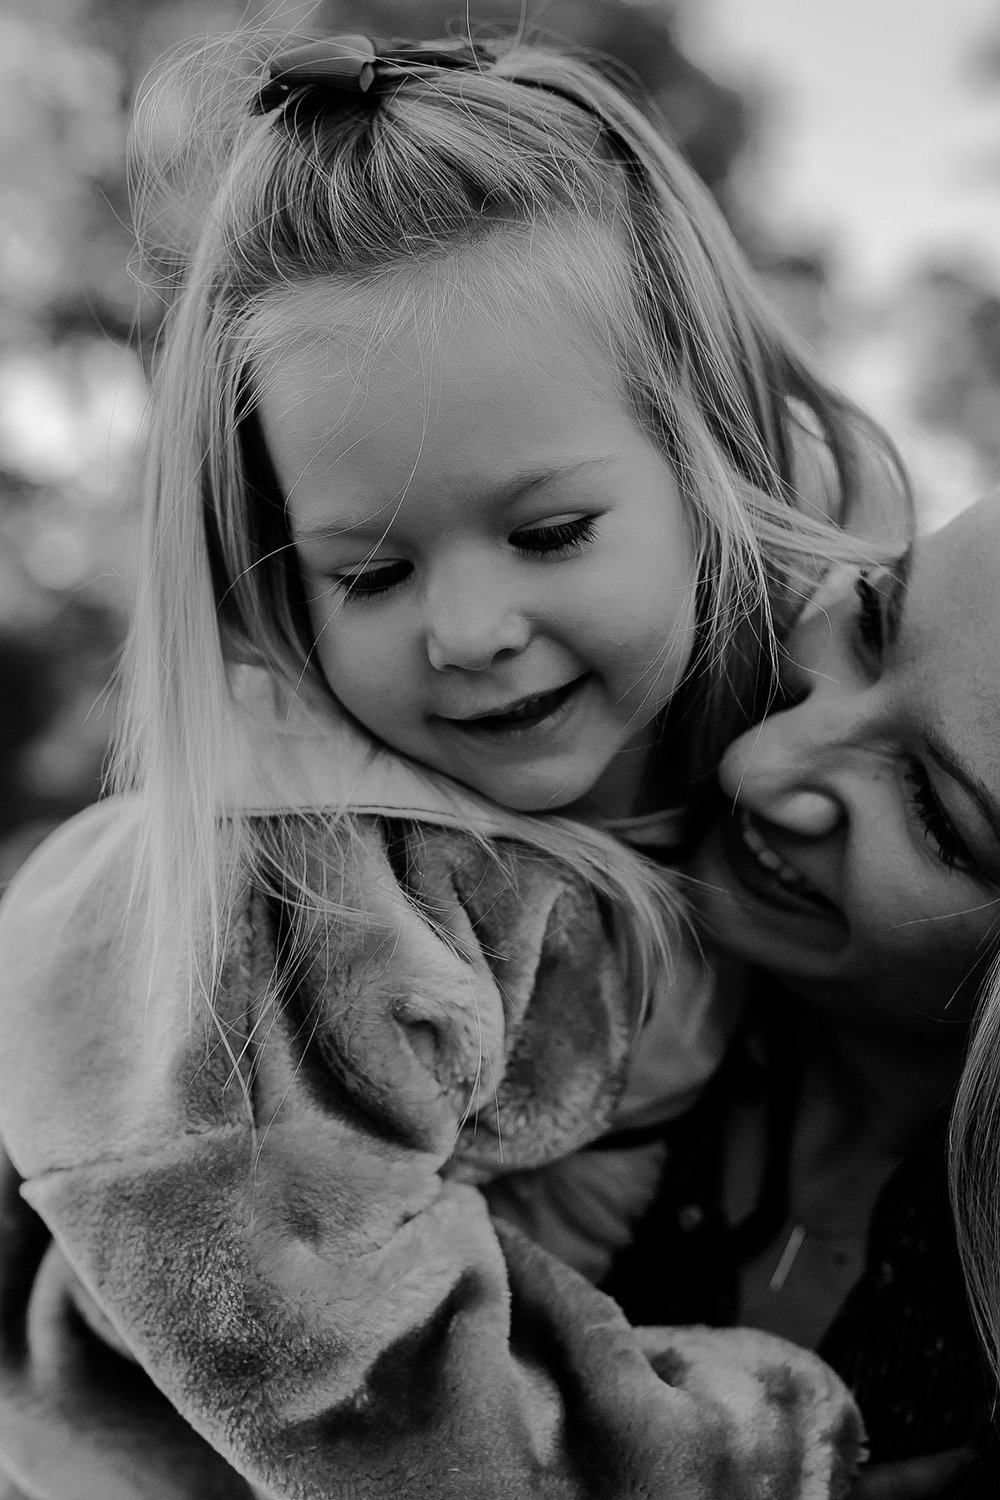 black and white close up photos of mom and daughter in central park nyc. photo by nyc family photographer krystil mcdowall